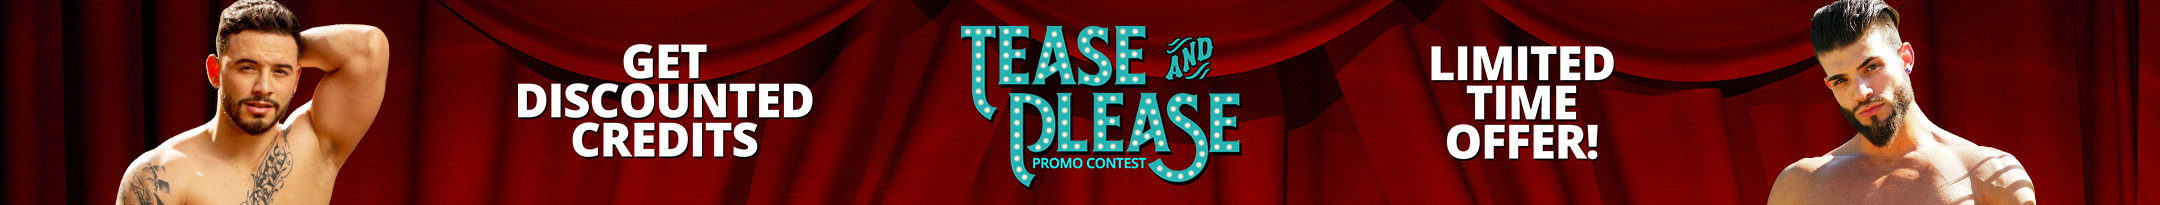 Tease and Please Discount Promo